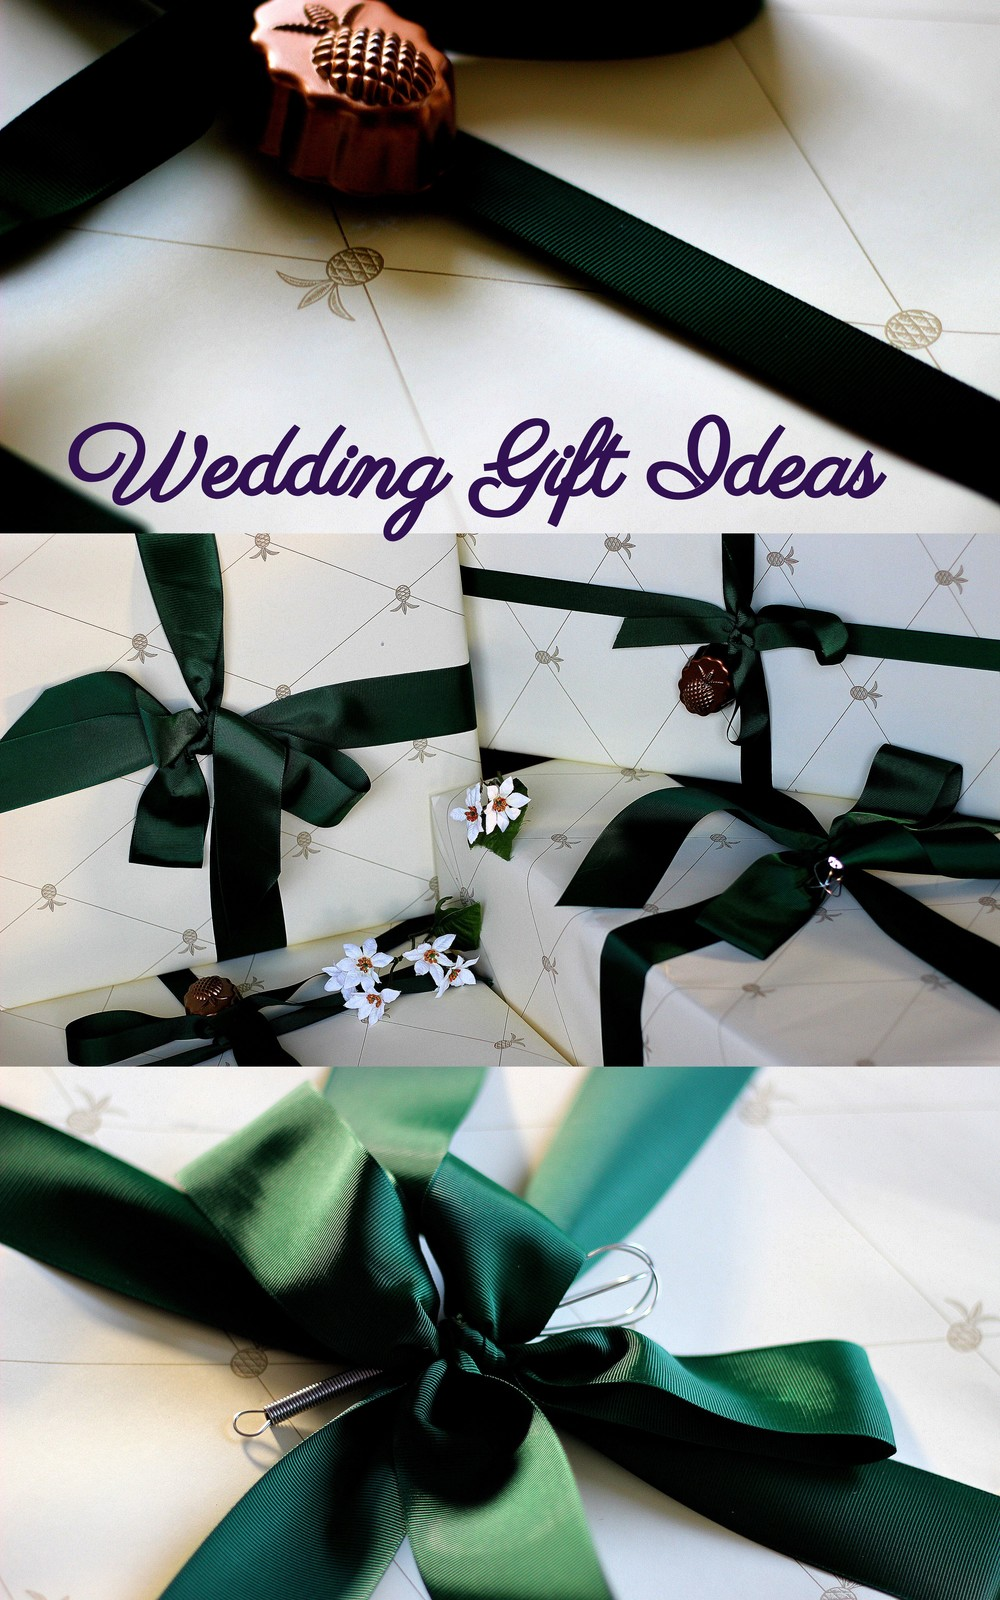 Lovely wedding gift ideas via Kaleidoscopes & Polka Dots